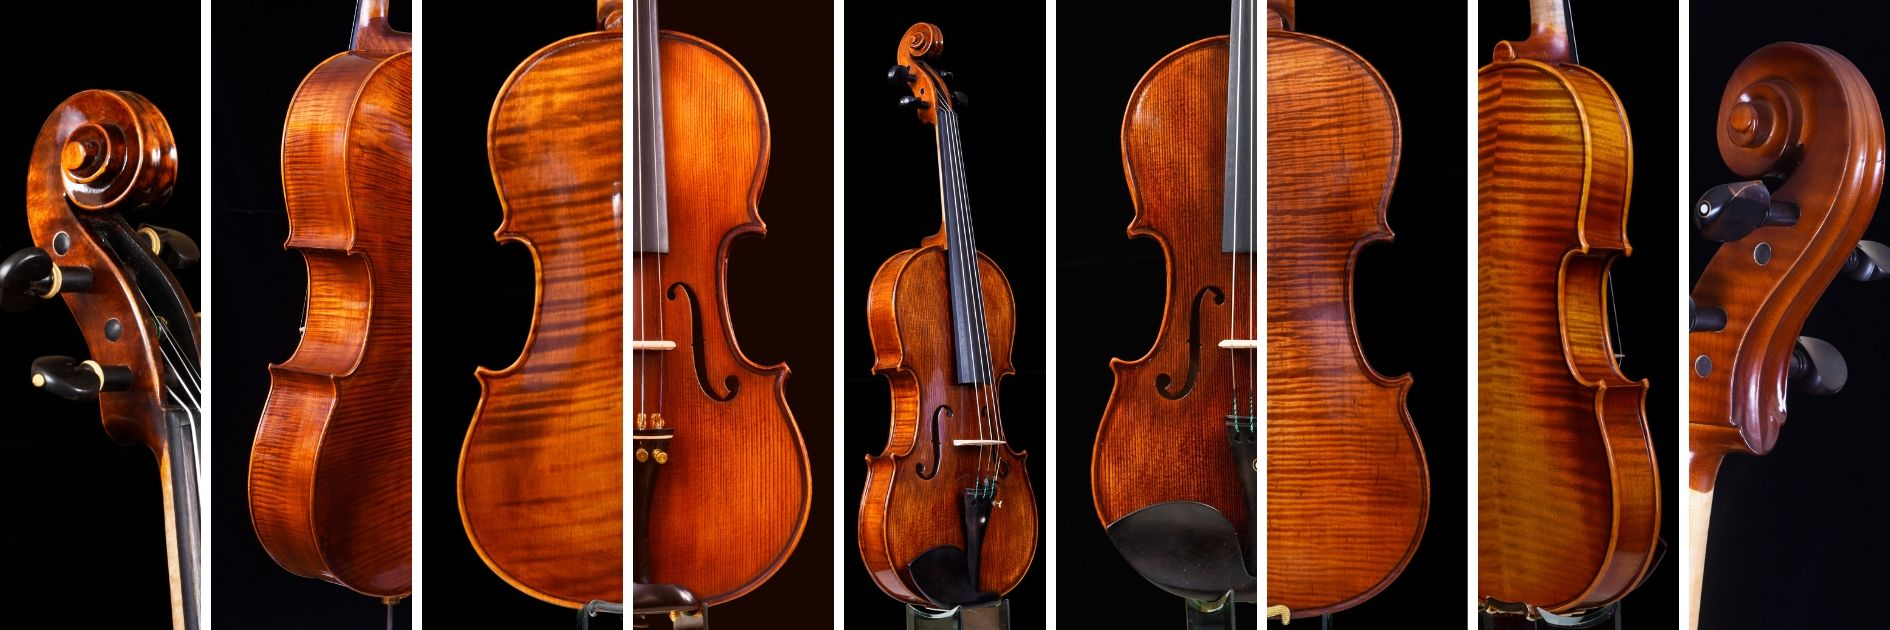 Quality, Professionally Setup Violins & Cellos for Purchase & Hire